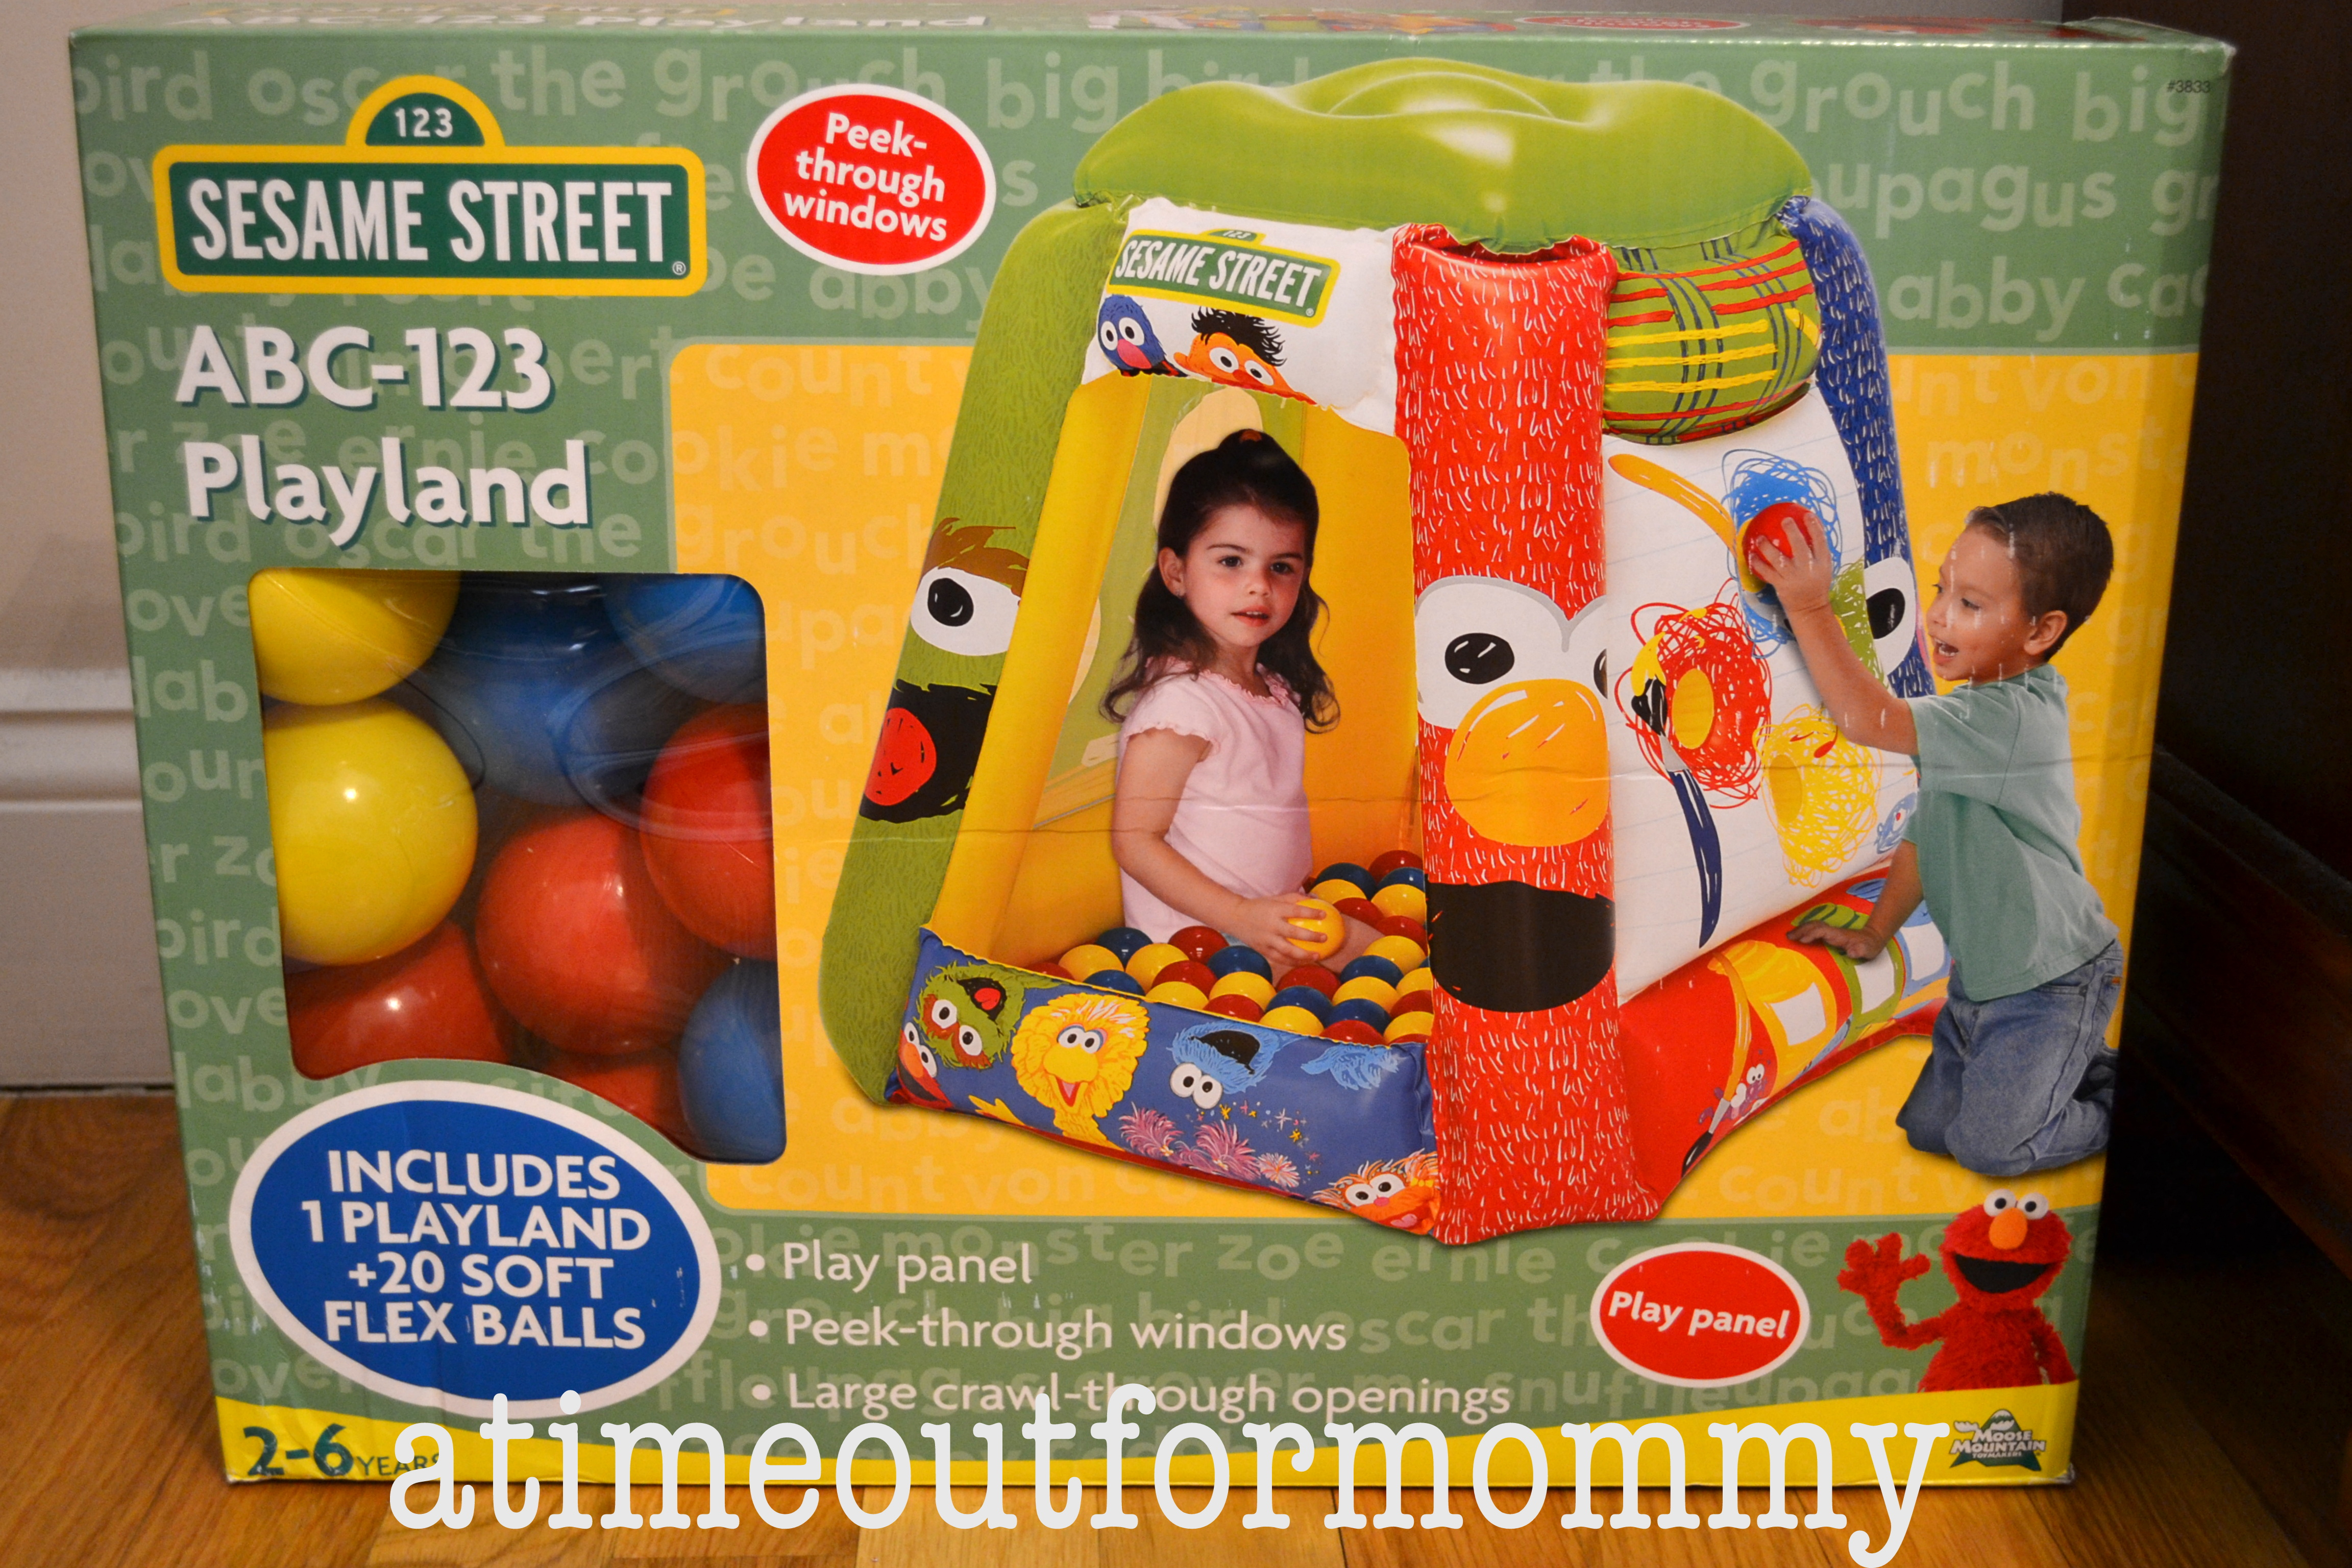 Hot Summer Toys: Indoor Fun with Sesame Street ABC Playland Inflatable Ball Pit